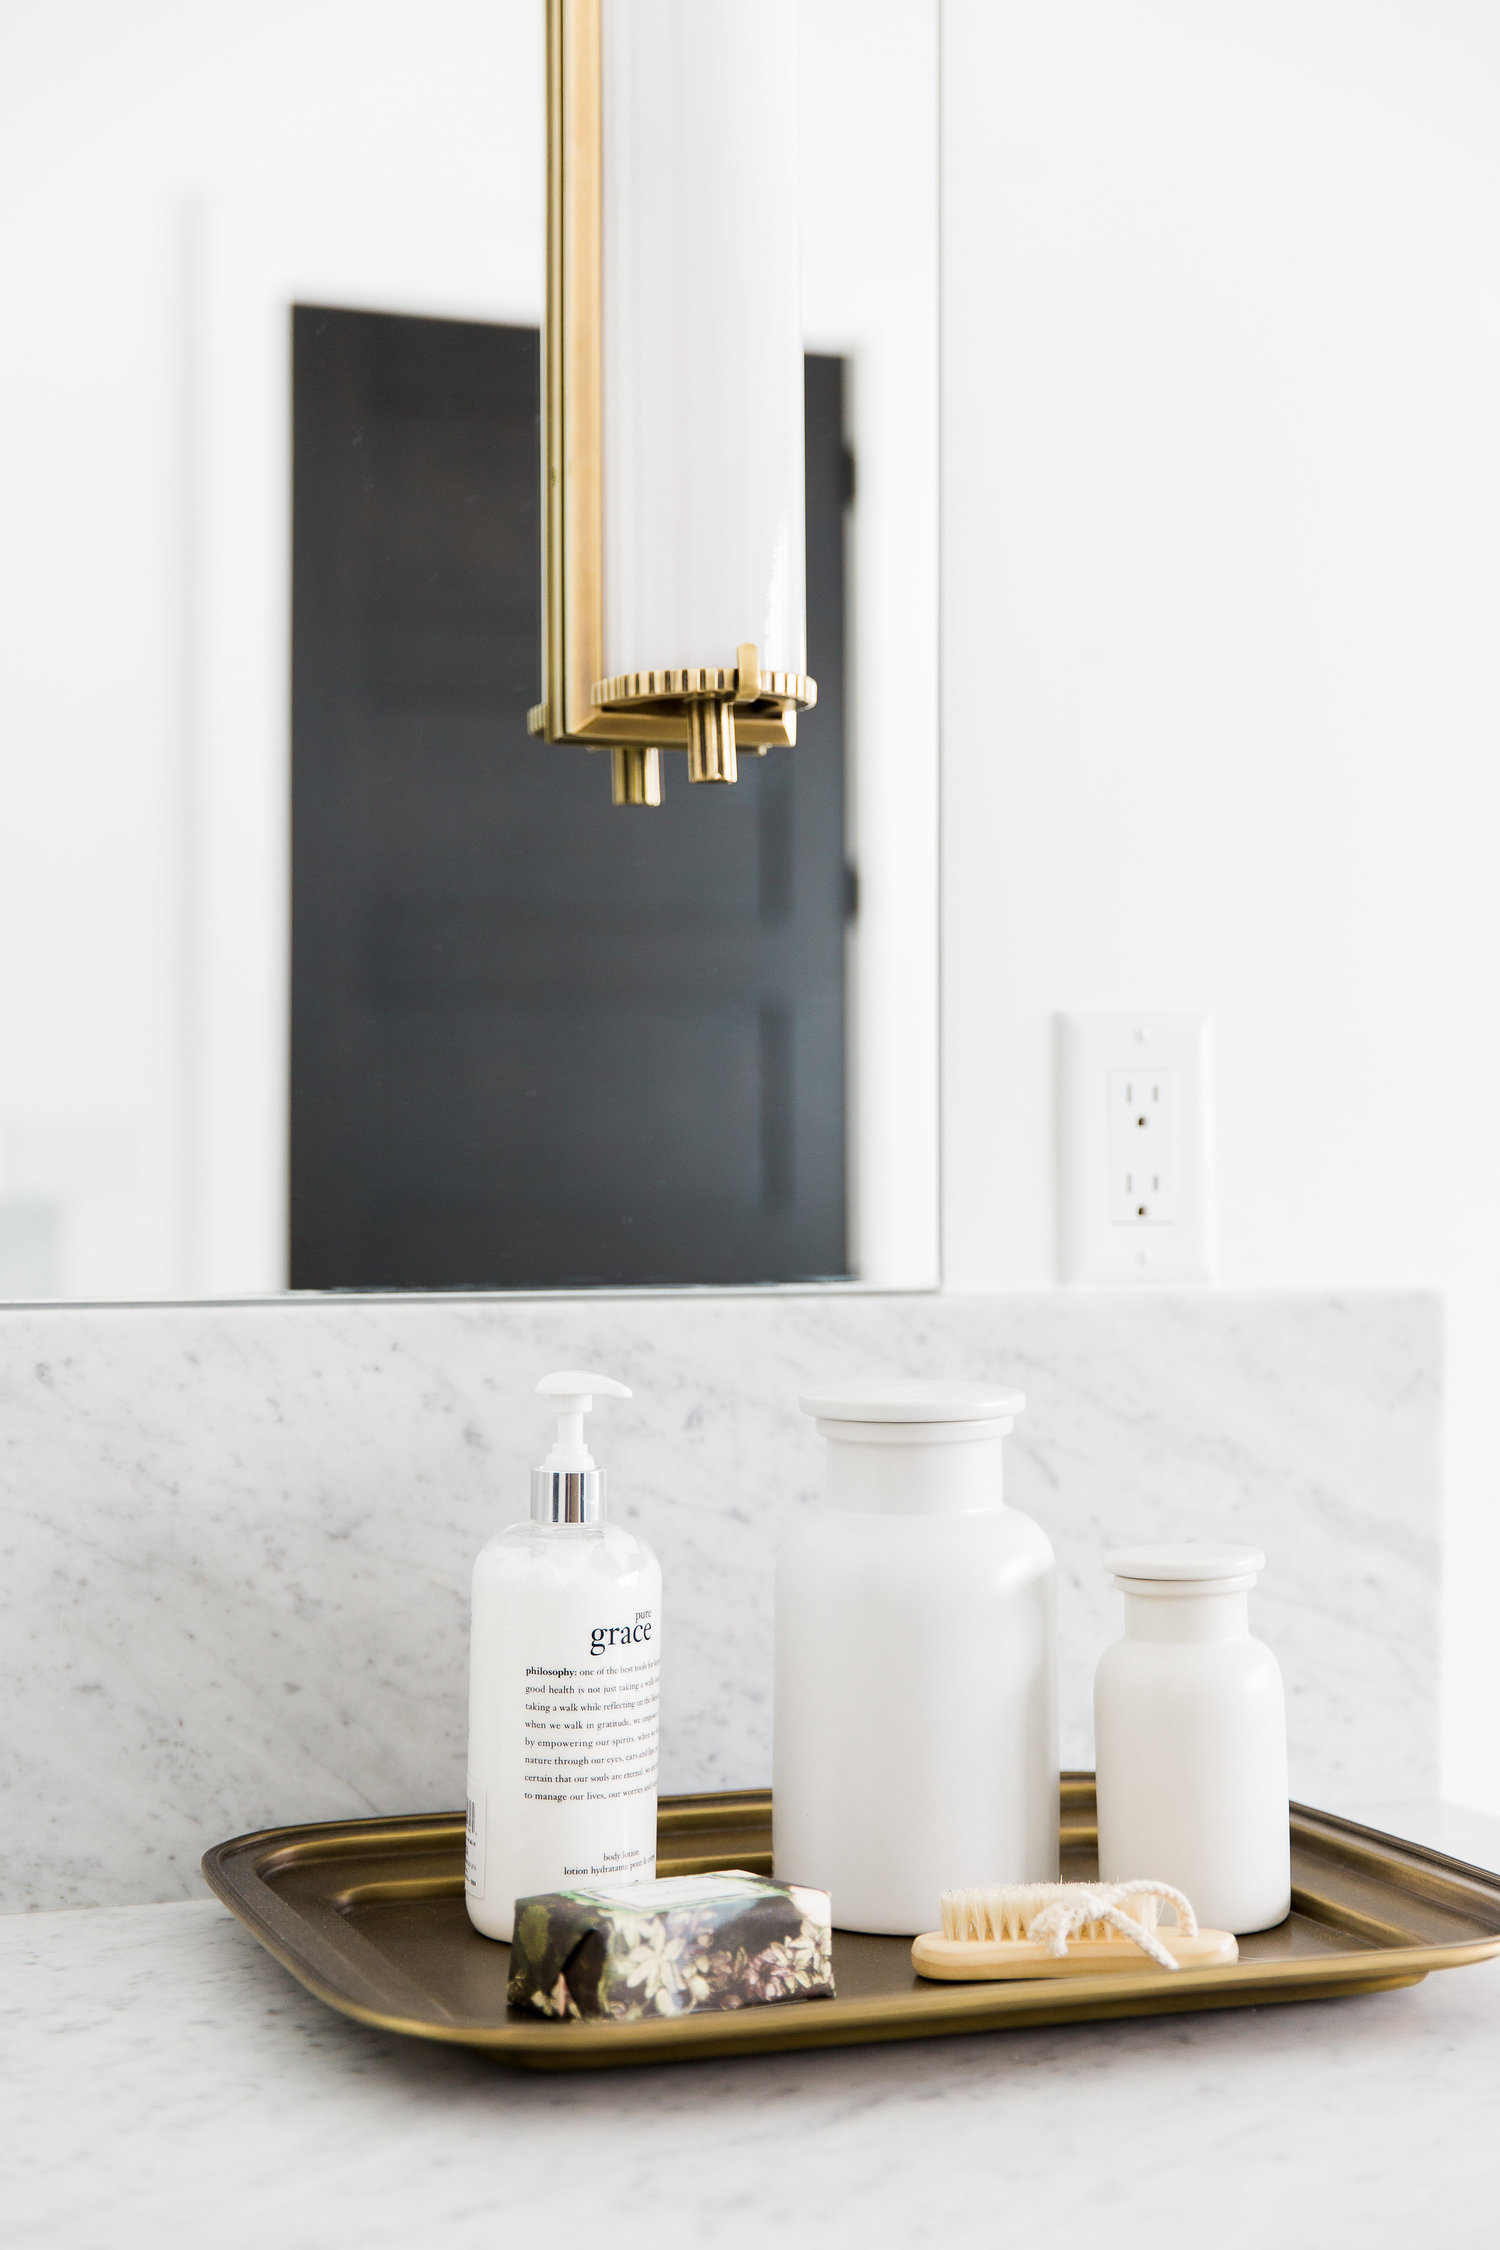 White lotion bottles on gold tray in bathroom